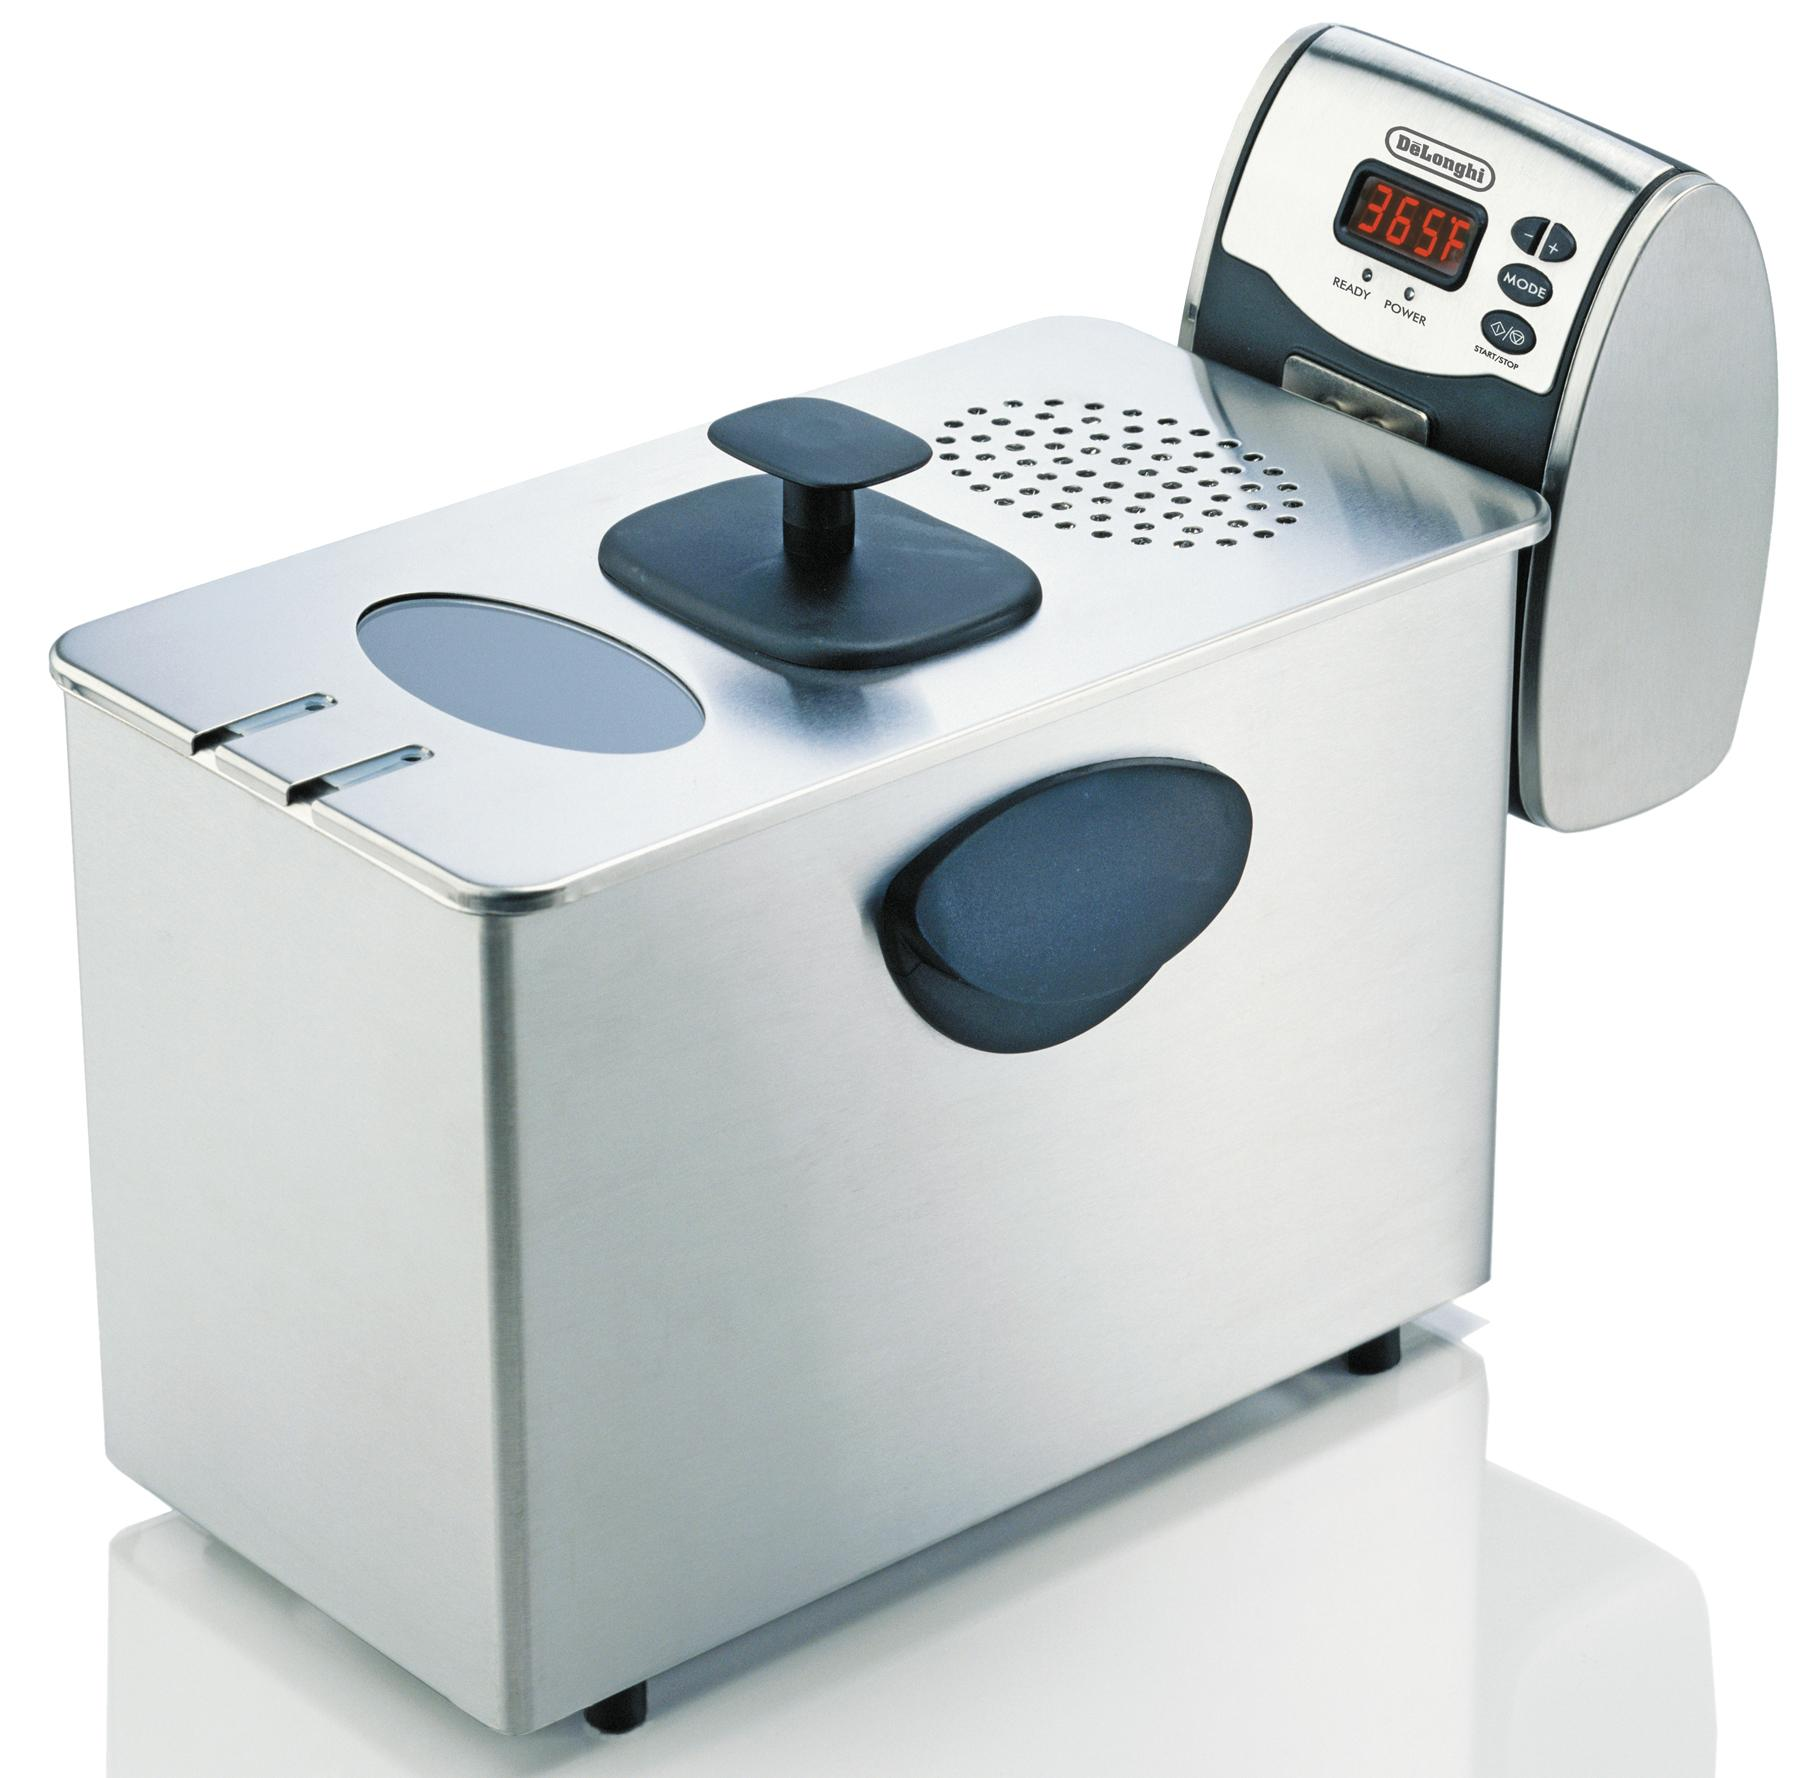 Delonghi d14427dz deep fryer steel 3lb dual zone digital